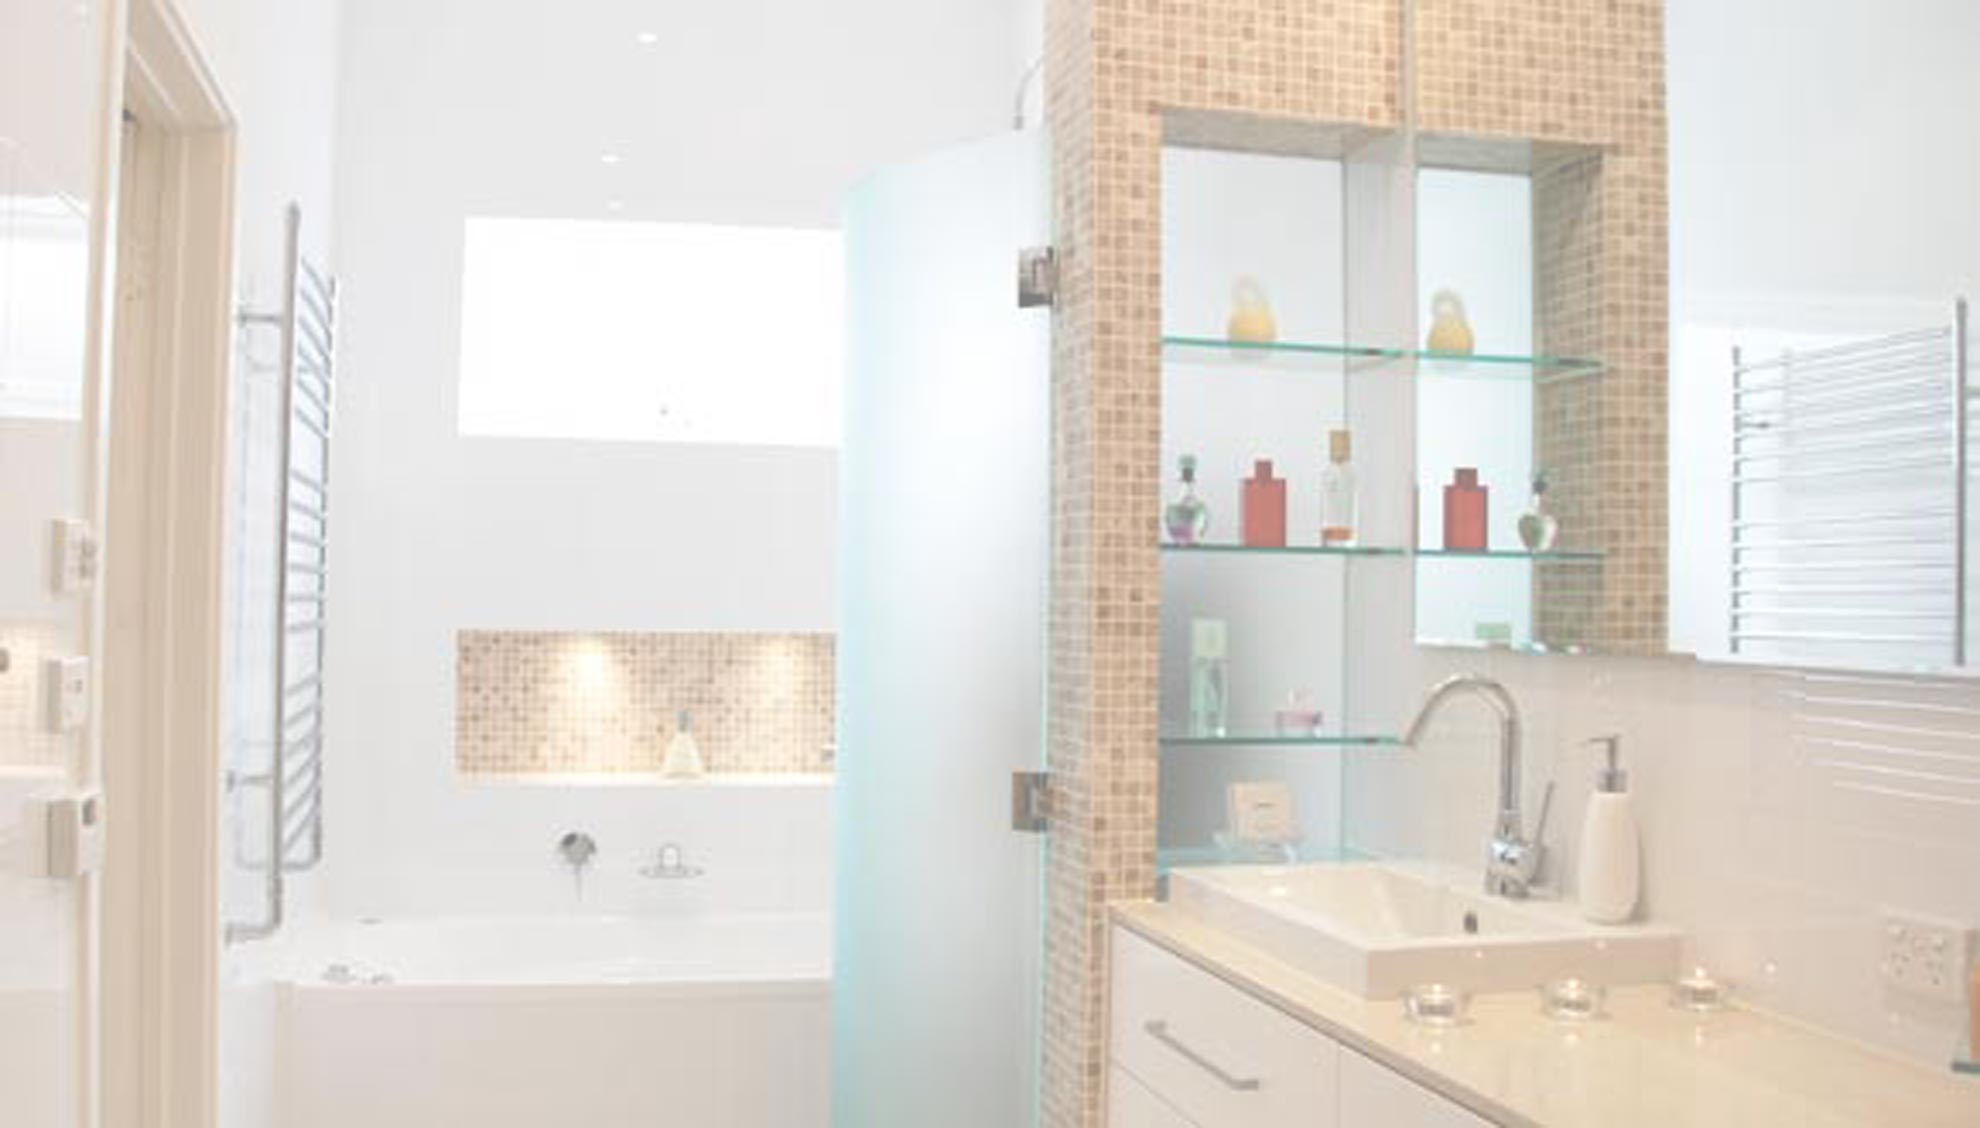 designs for life - Bathroom Designs Adelaide